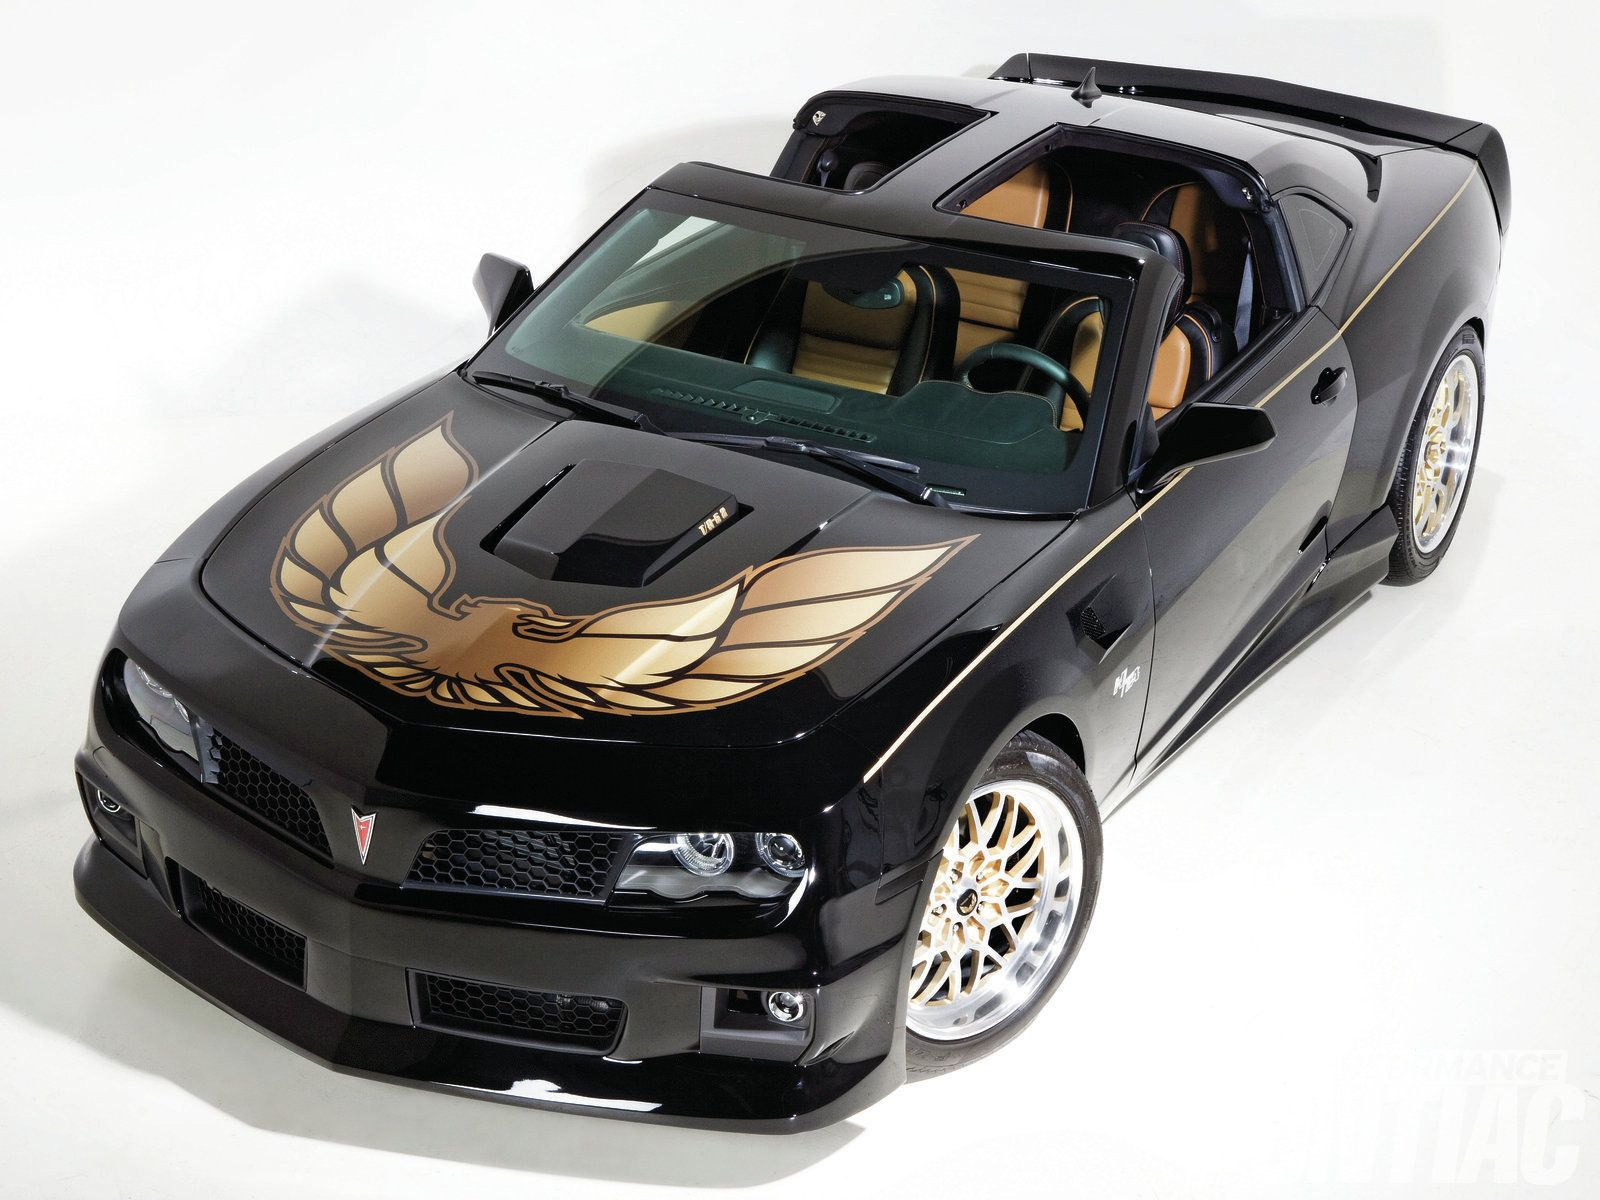 Best 25 2017 trans am ideas on pinterest 1977 trans am bandit trans am and new trans am